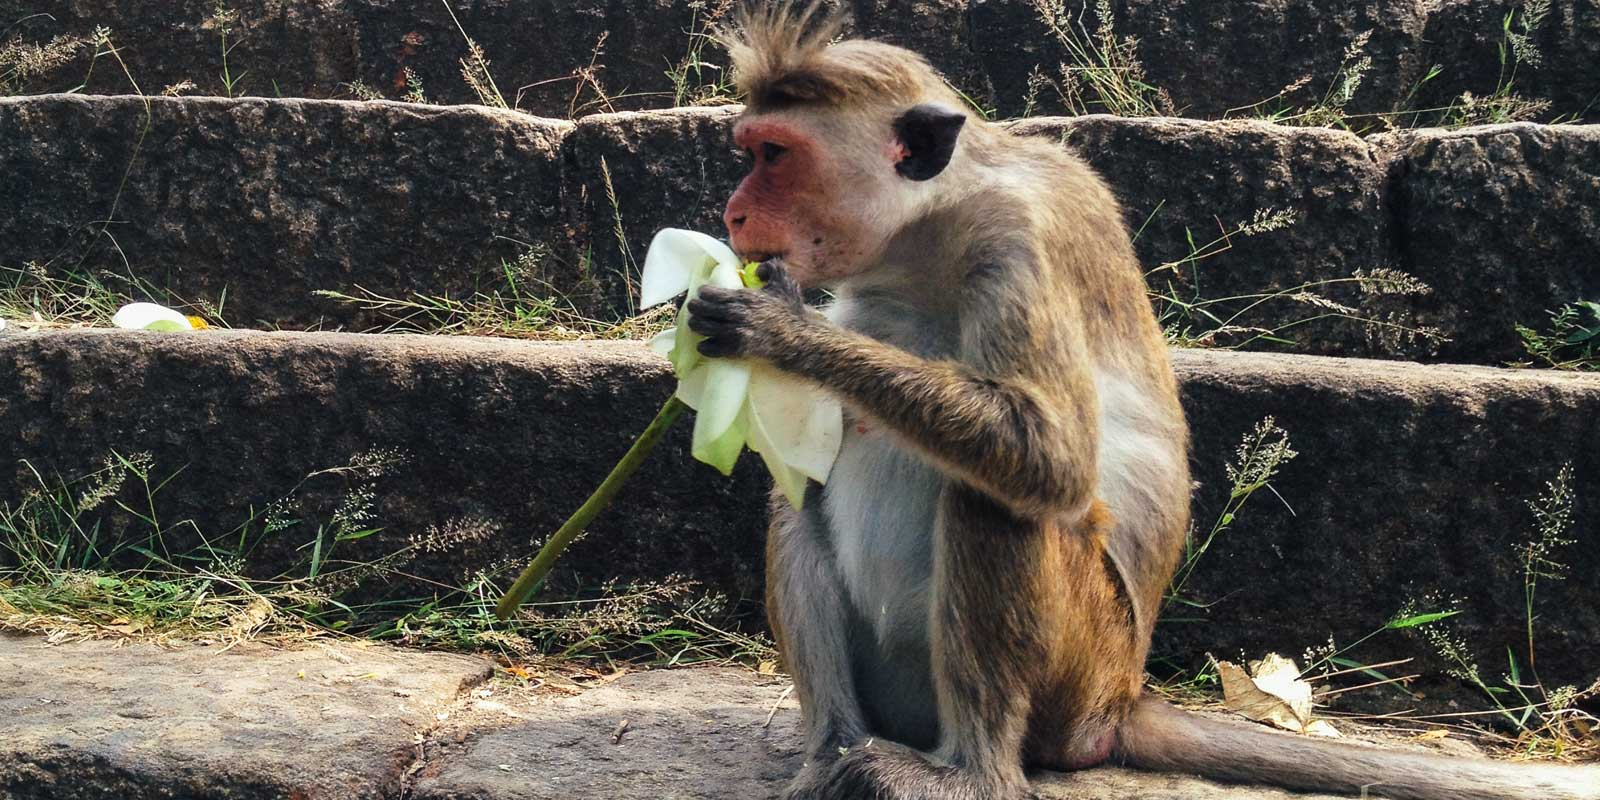 Zoomed in photo of a toque macaque monkey eating a flower while sitting on stone steps at Dambulla cave temple.